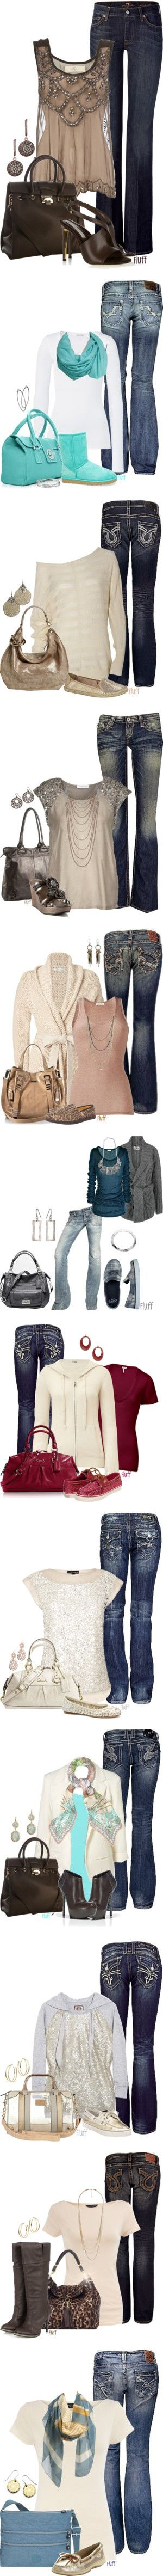 """""""Jean Sets"""" by fluffof5 on Polyvore: Fall Fashions, Cute Outfits With Jeans, Outfit Ideas, Jeans Outfits, Dream Closet, Fall Outfits, Jean Outfits, Fall Styles"""